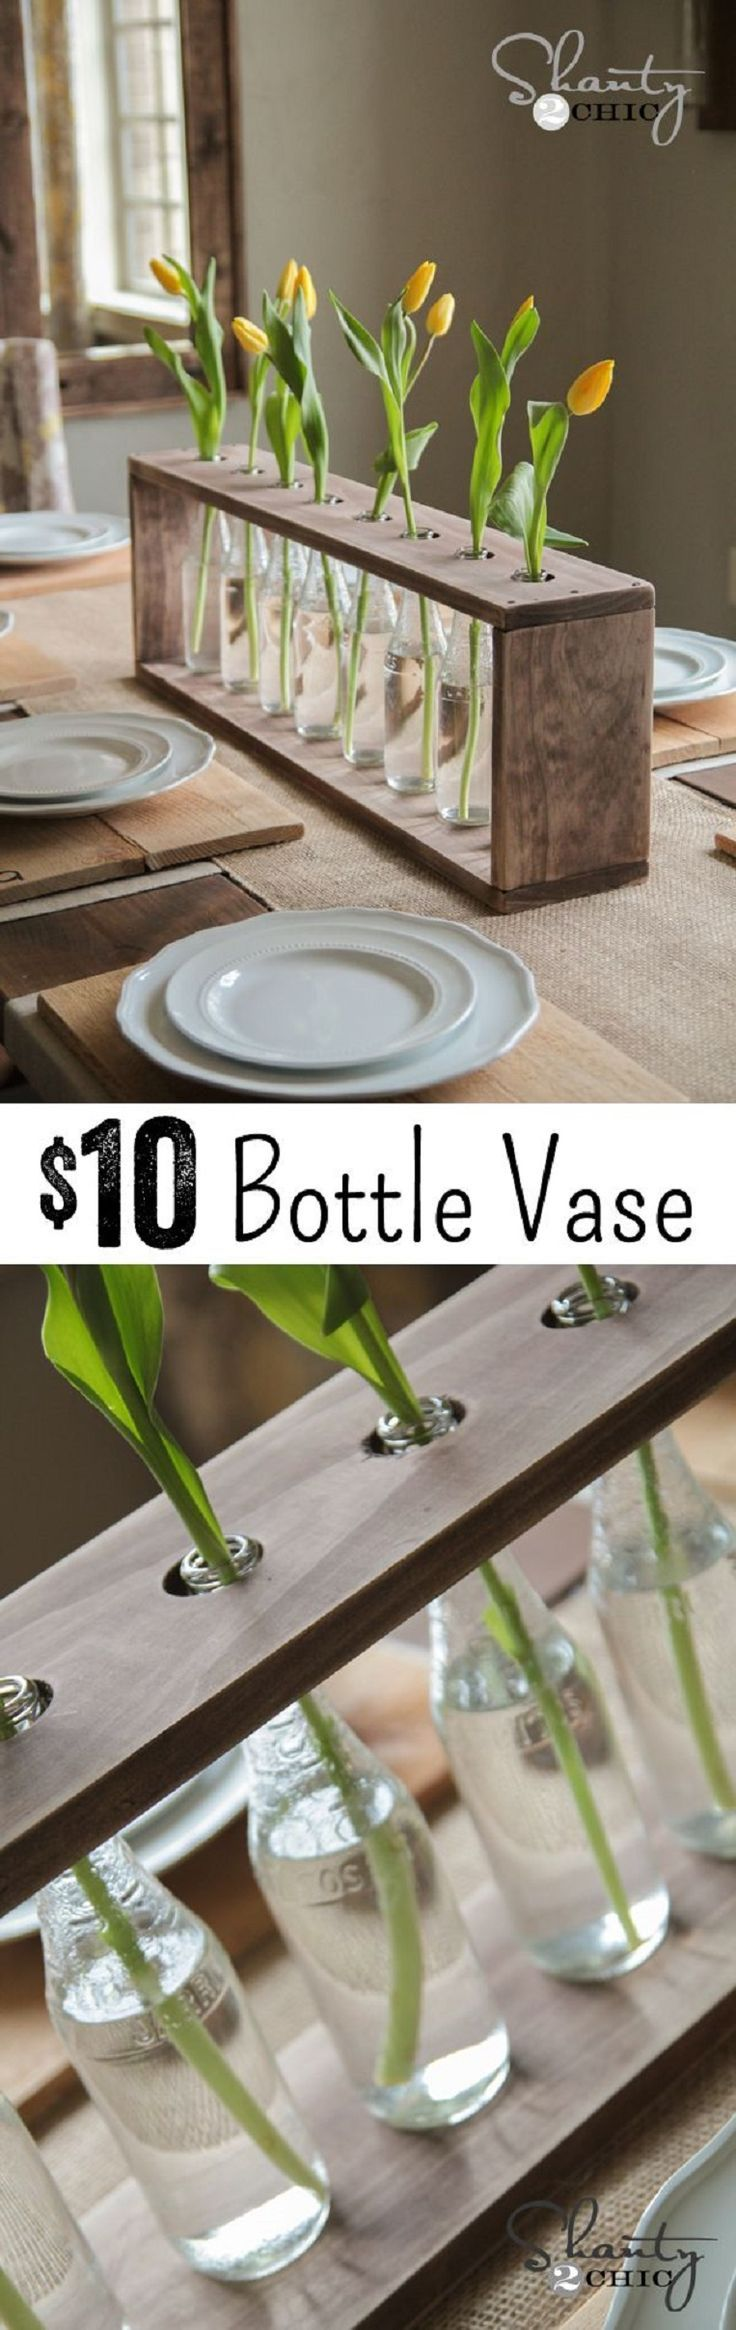 Easy DIY Bottle Vase Centerpiece - 17 Easy DIY Woodworking Project Tutorials | GleamItUp